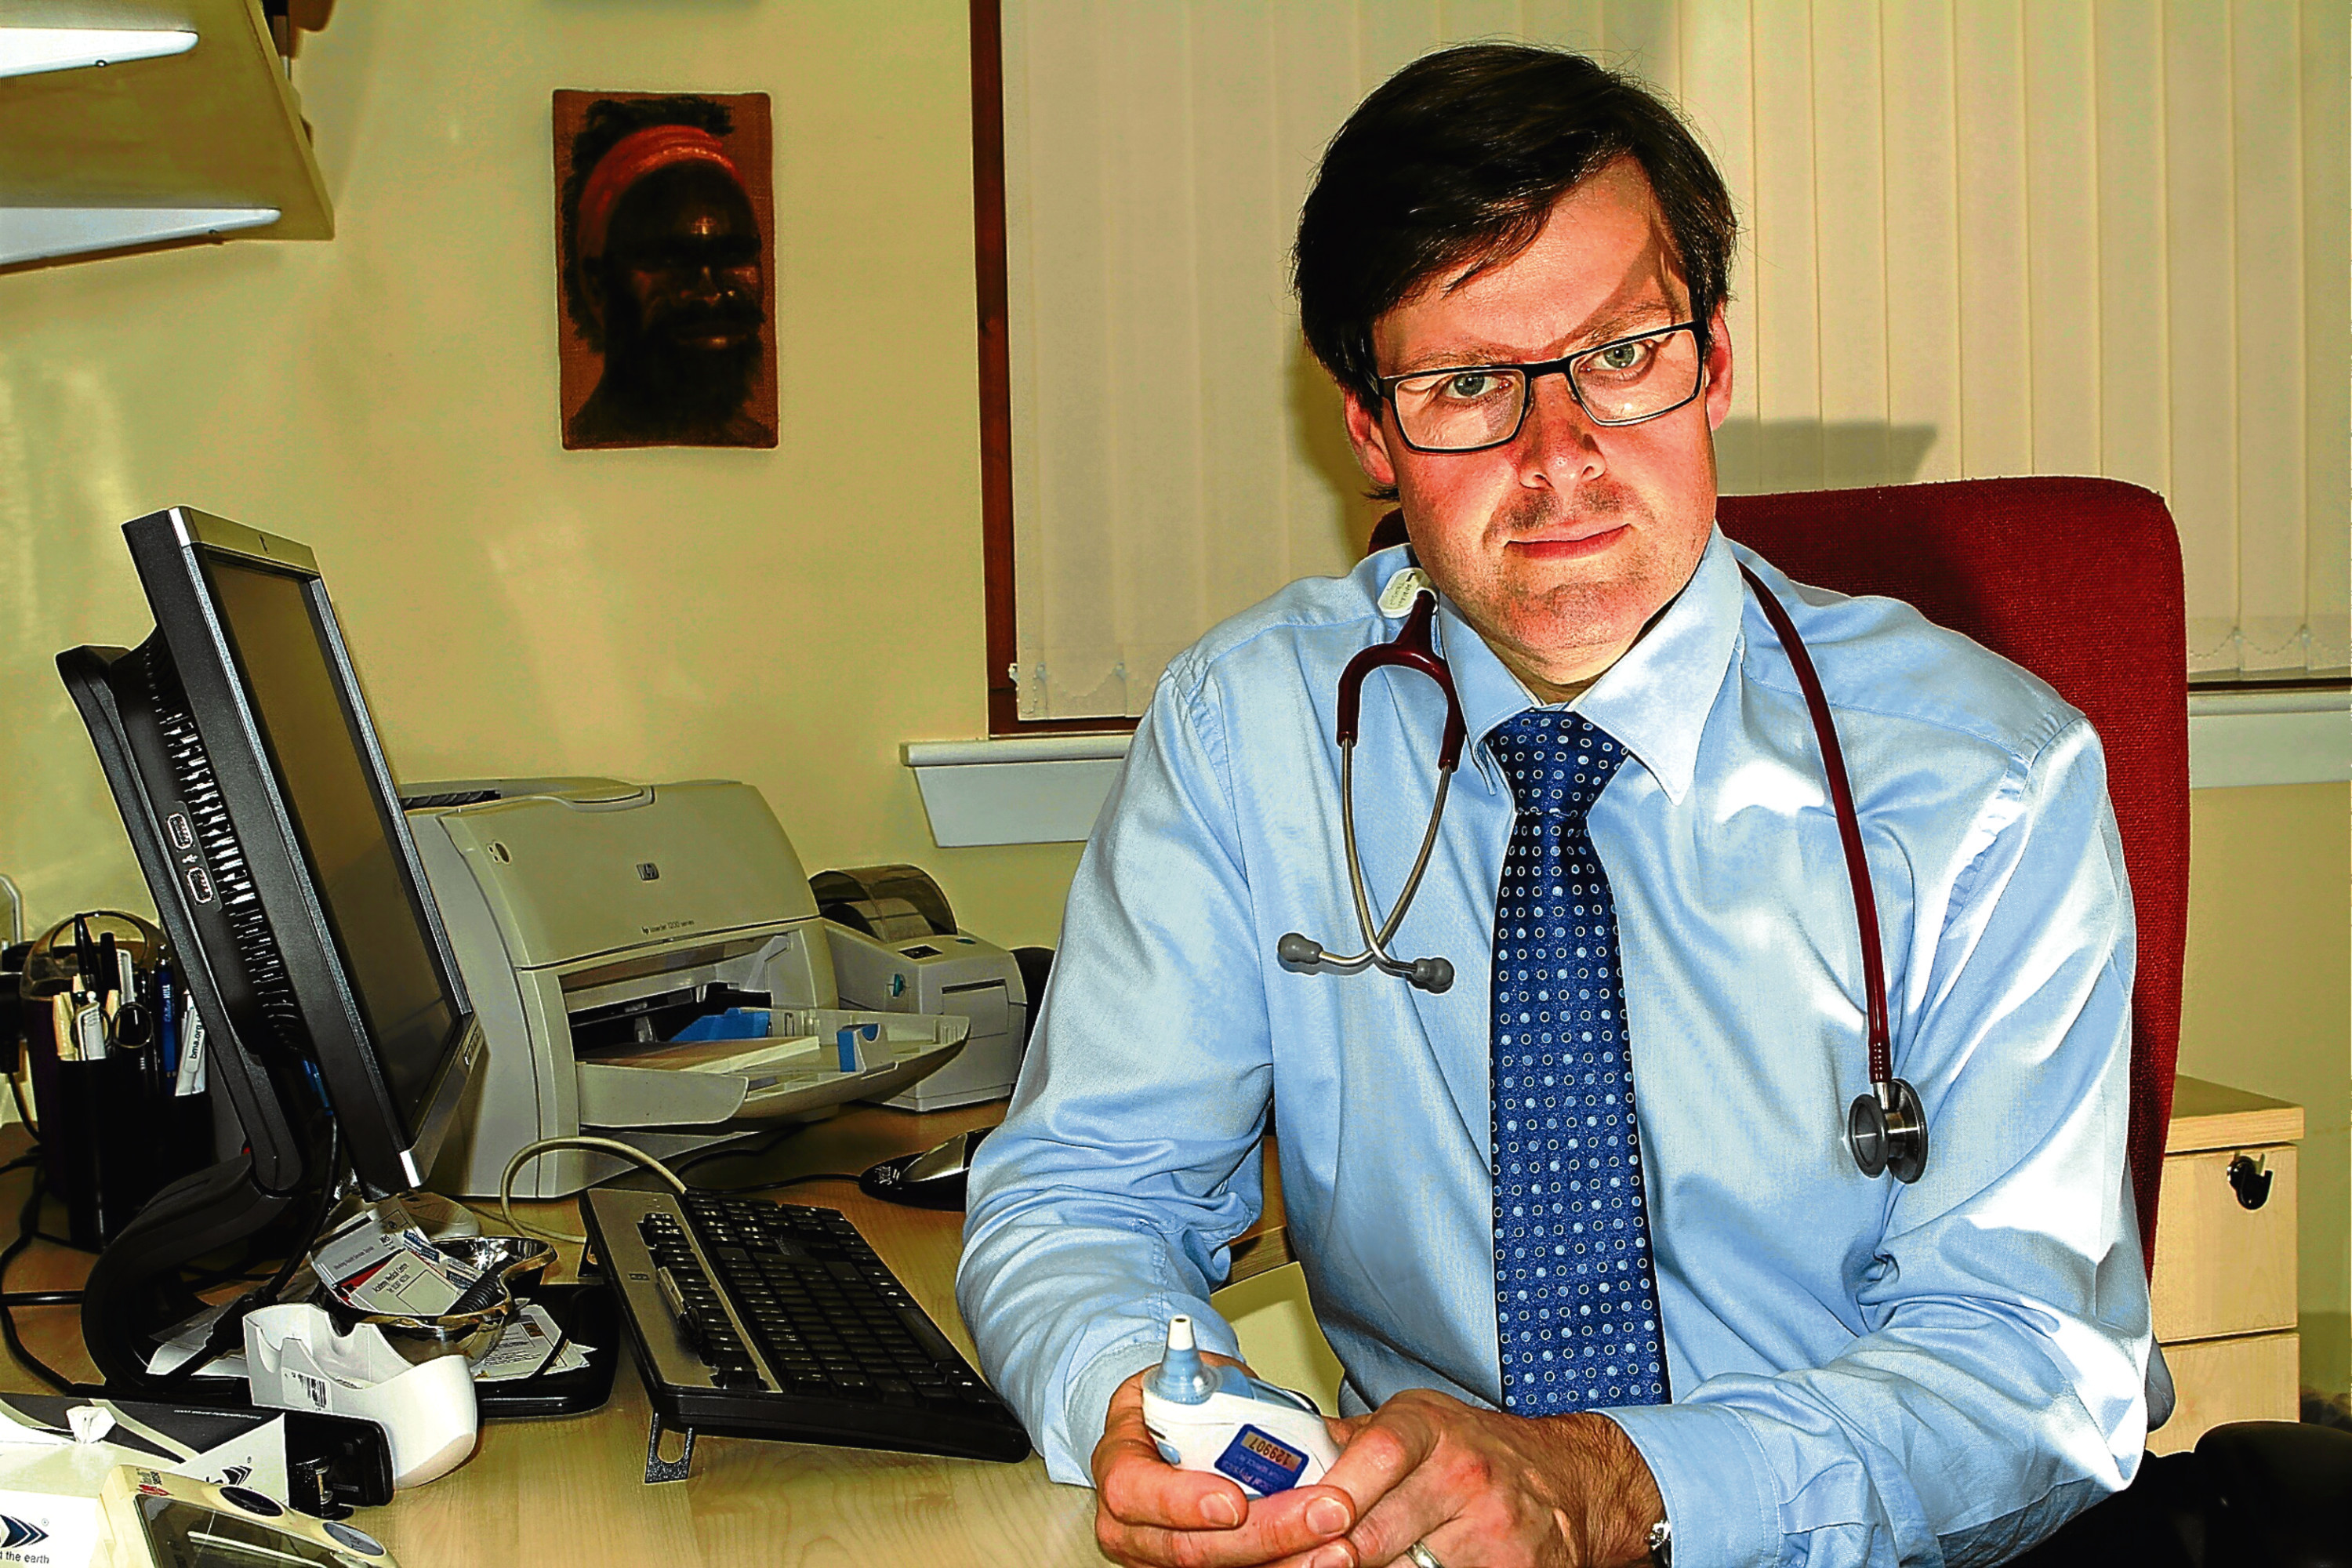 Dr Andrew Thomson, who worked at the Academy Medical Centre for several years.